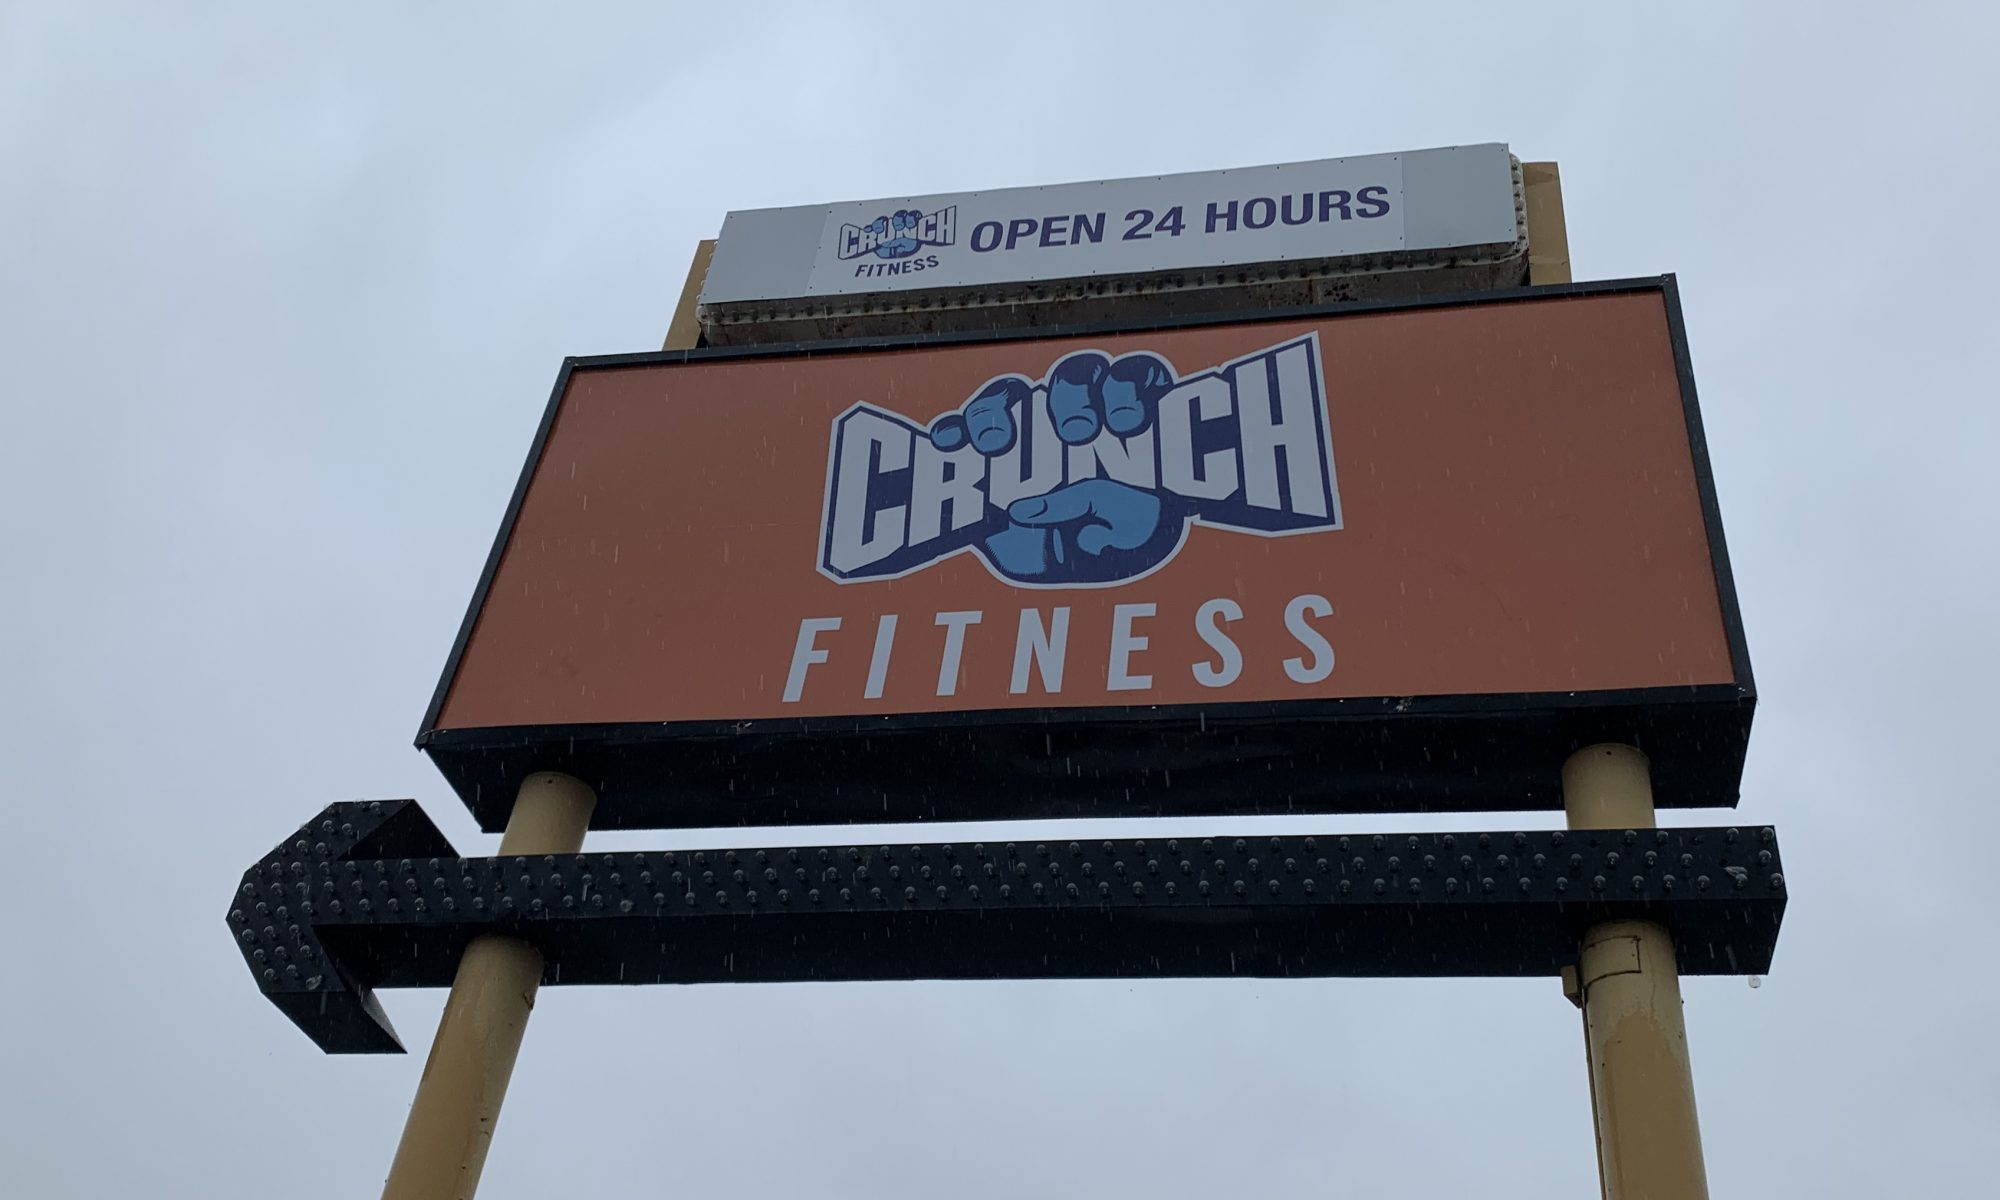 More signage for Crunch Fitness. This time it is their branch in Northridge, which is getting a new gym pylon sign insert installed.